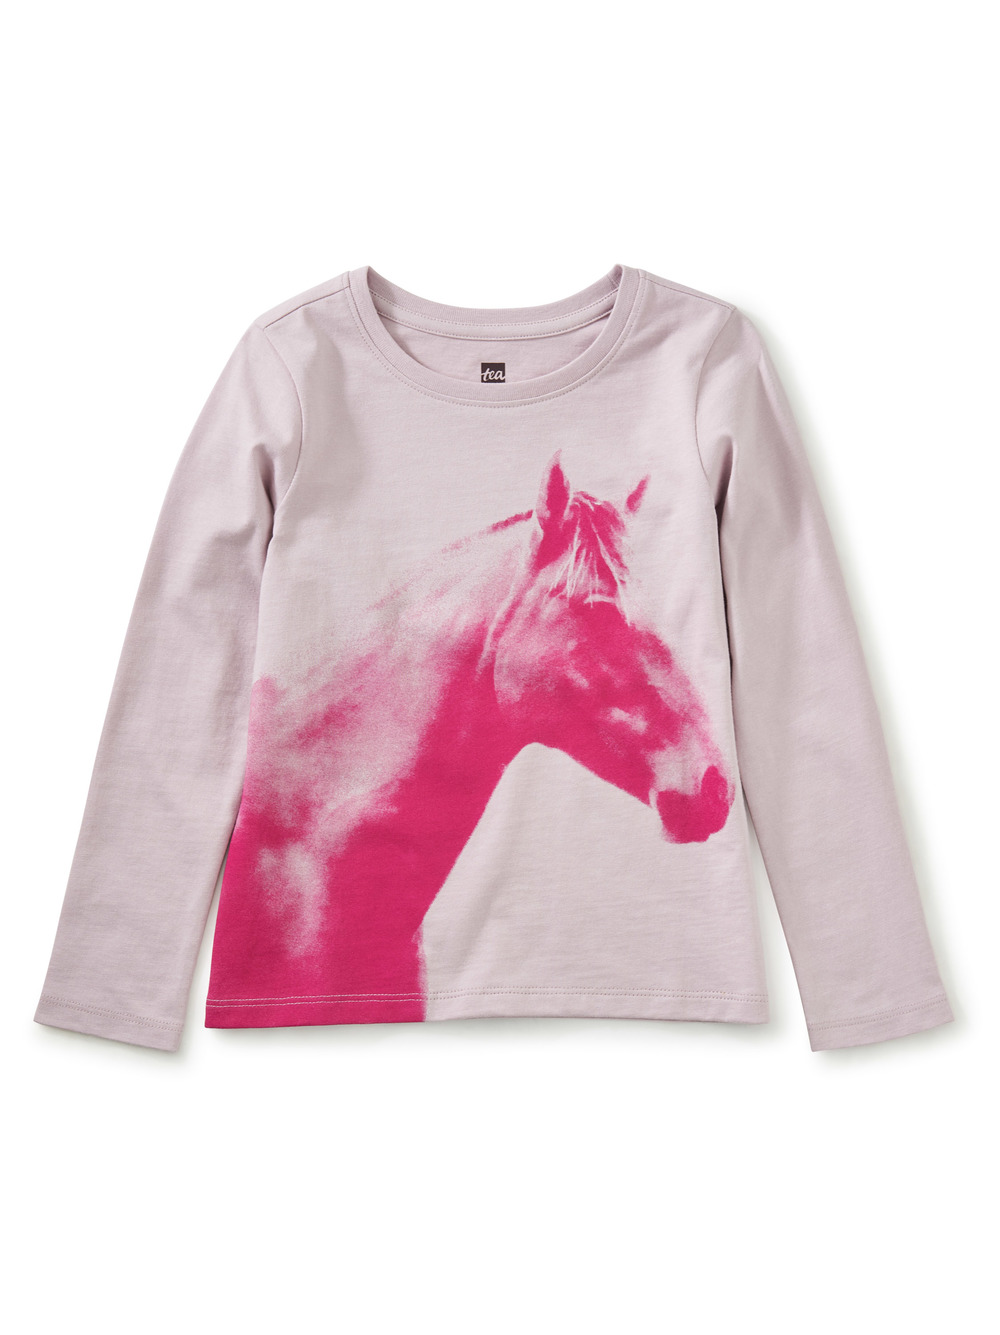 Horse Lover Graphic Tee